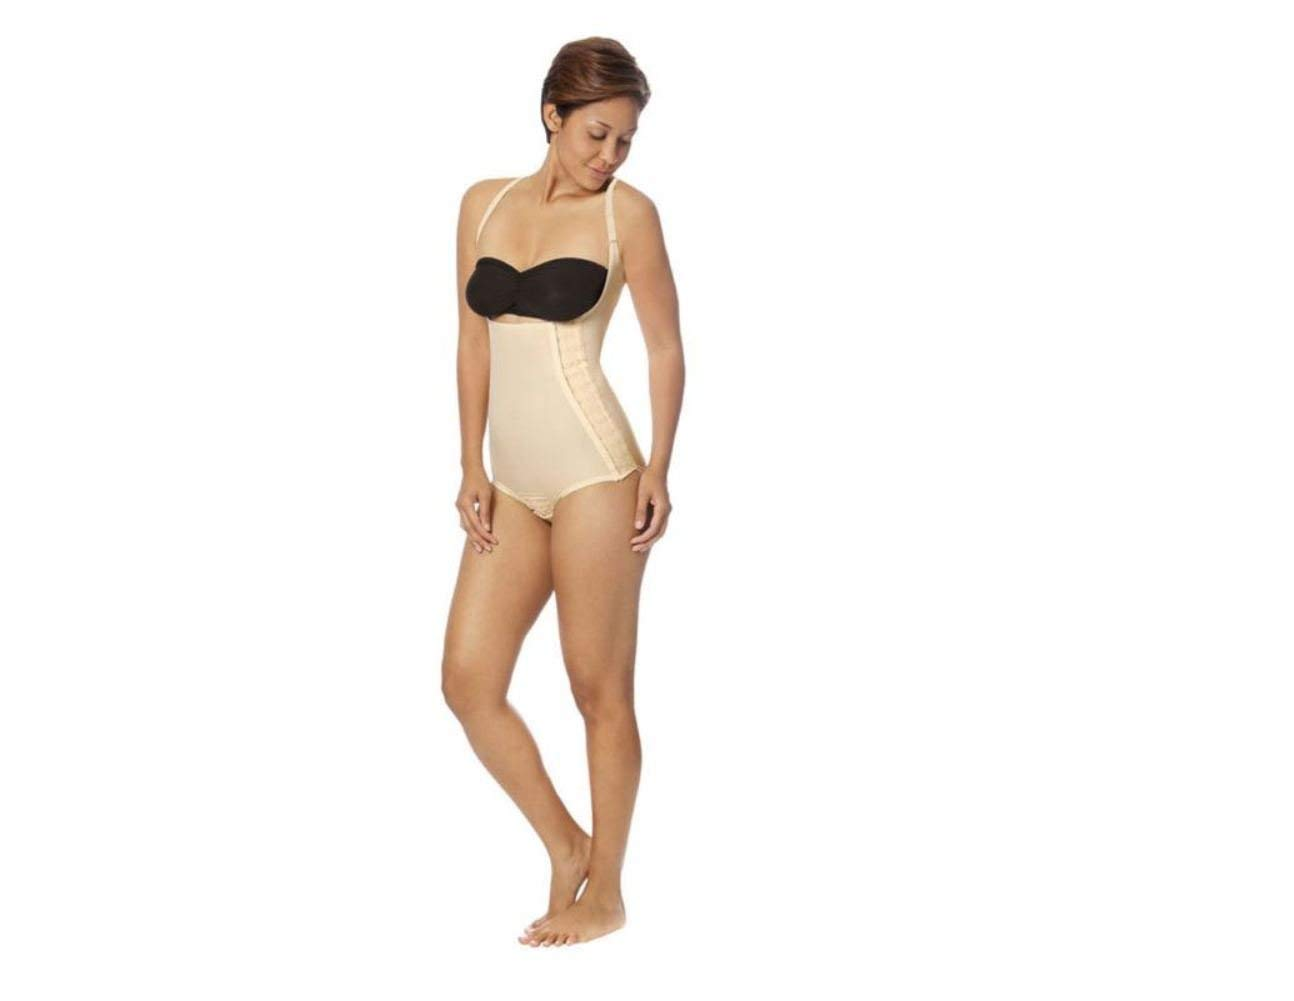 e83ab3dc8 Get Quotations · Marena Recovery SFBHA Panty-Length Girdle With High-Back- 2XL-Beige